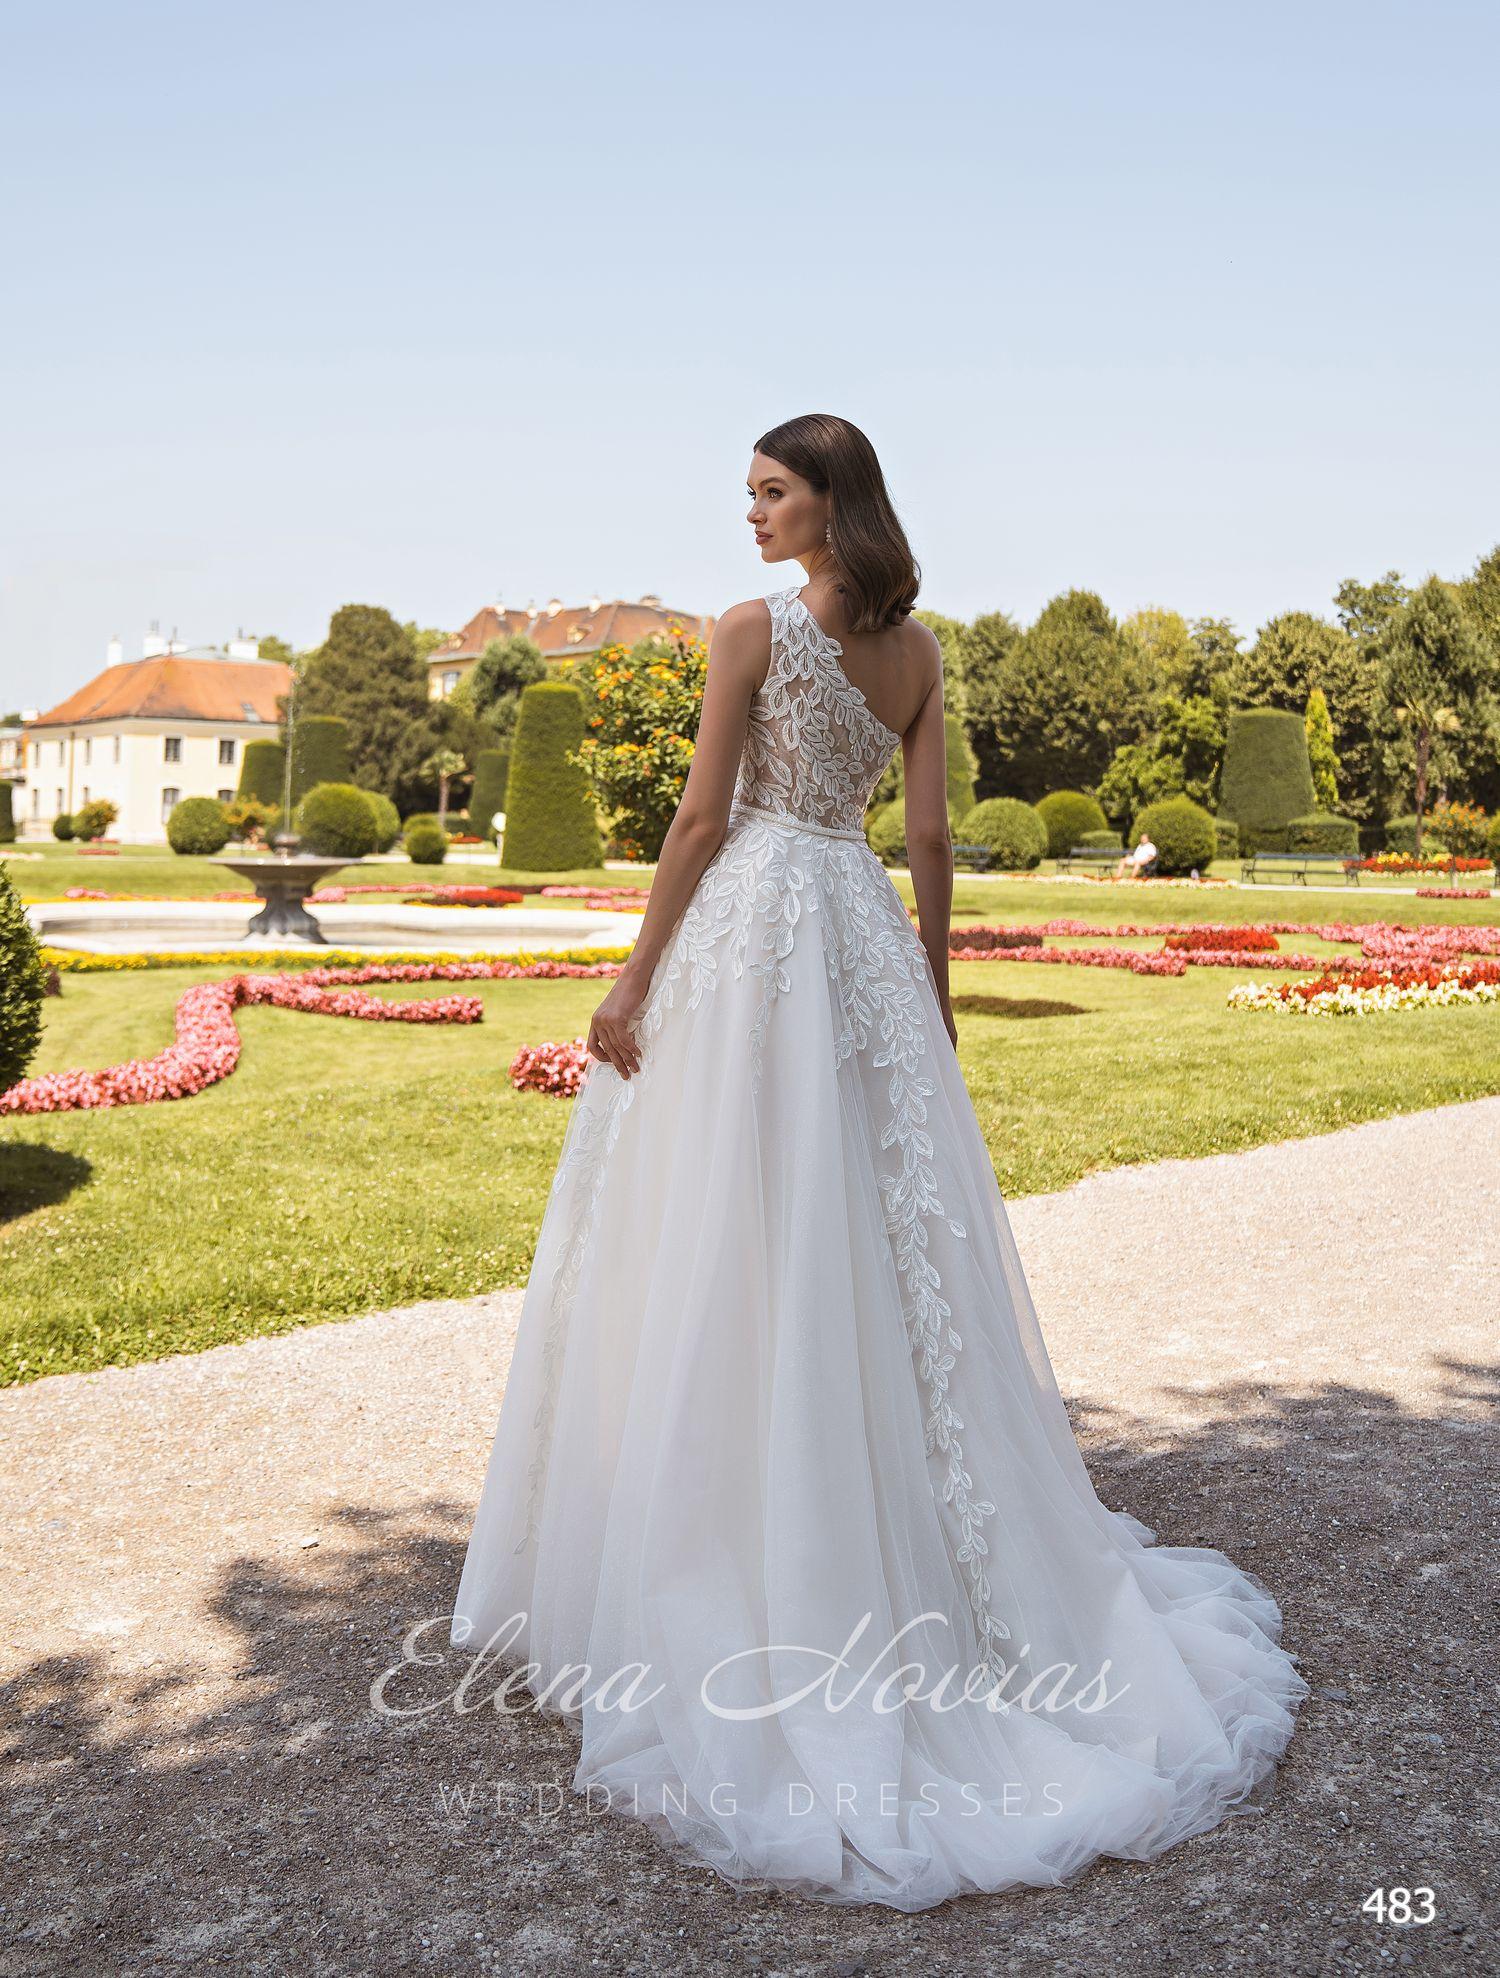 Wedding dresses 483 2